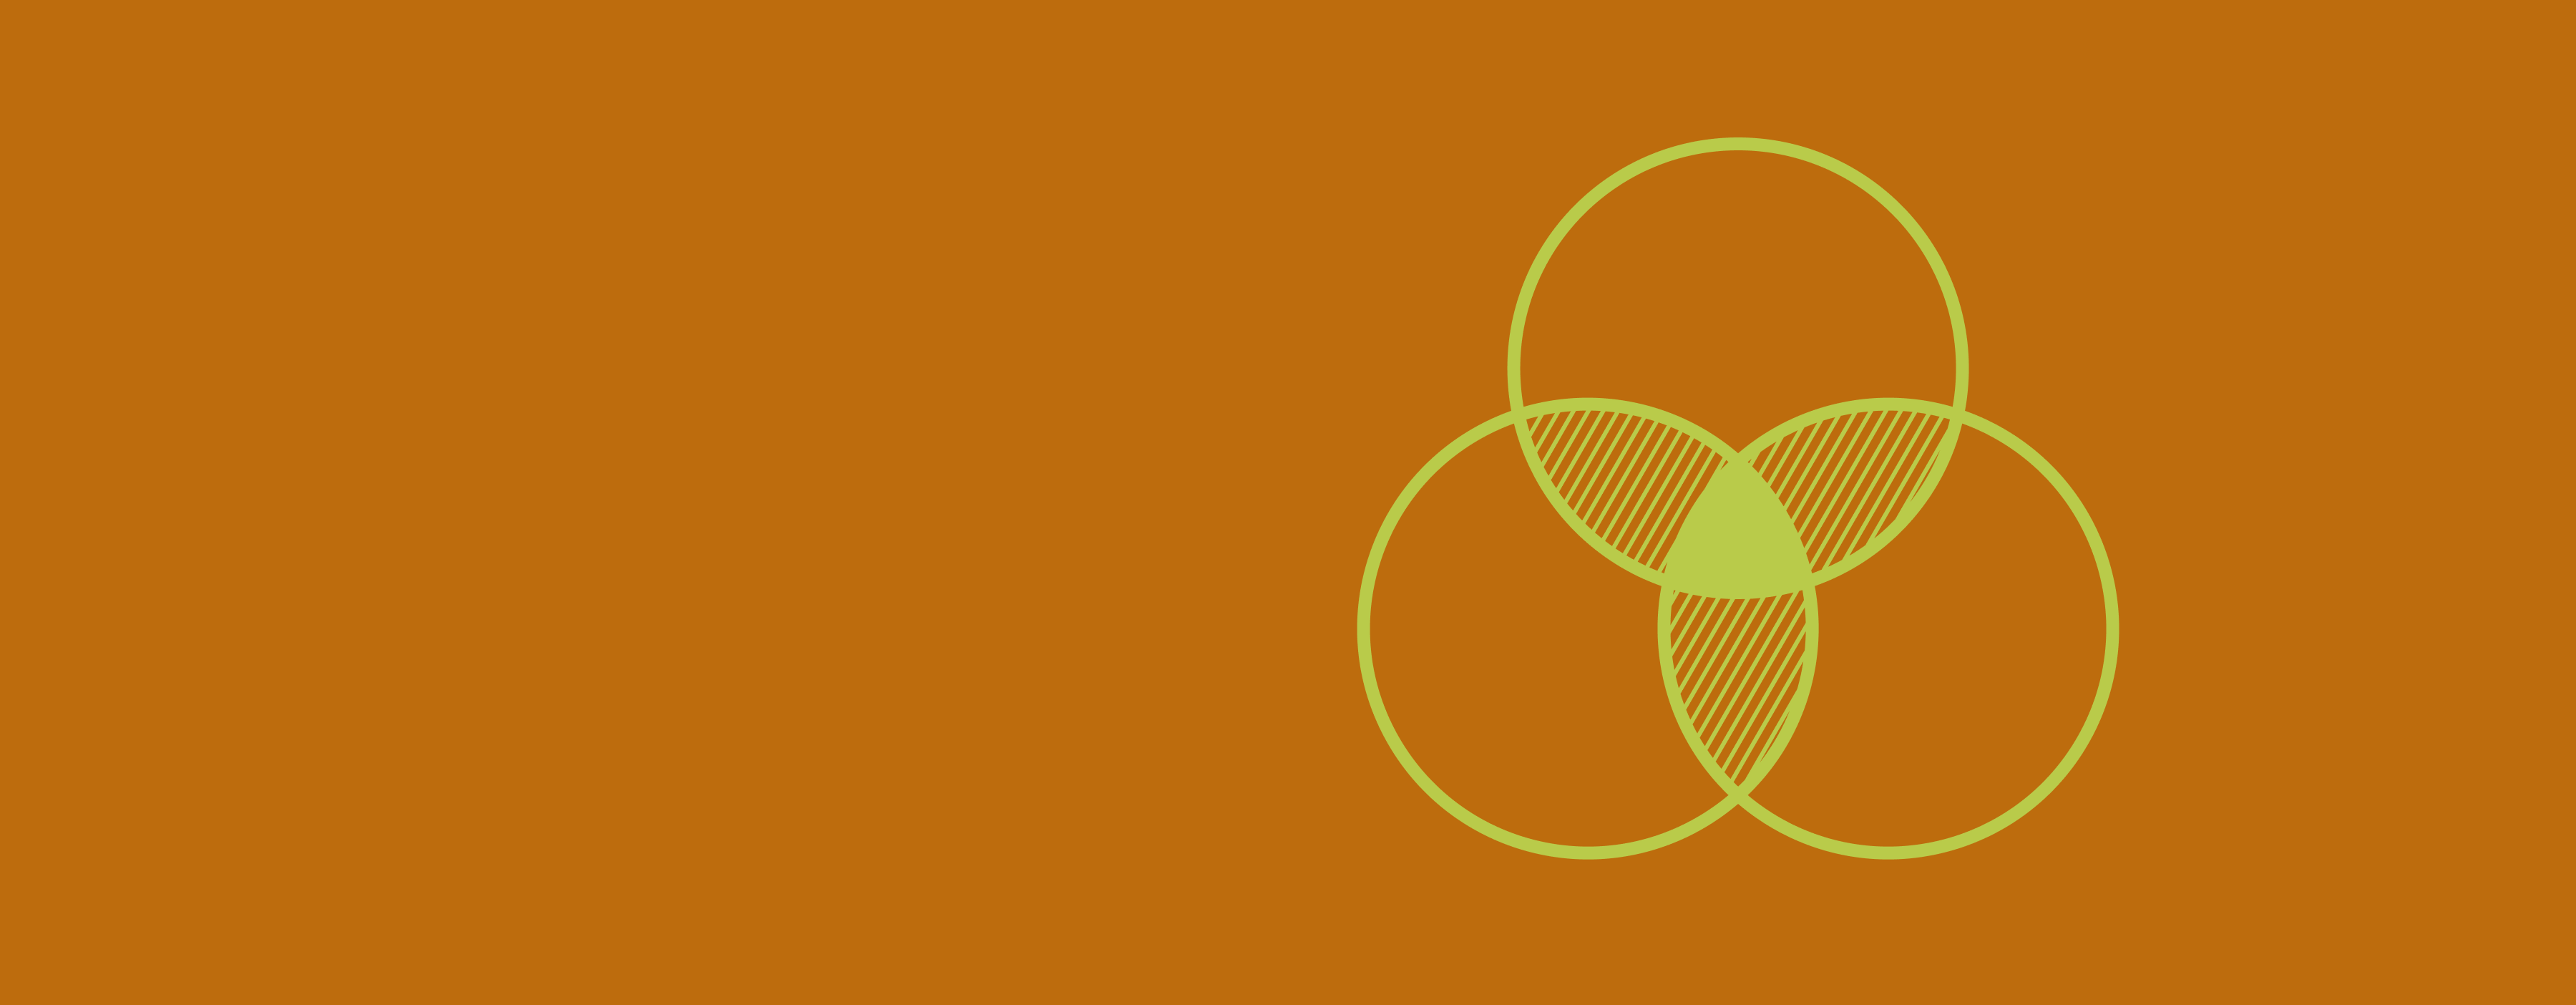 A diagram of three overlapping circles